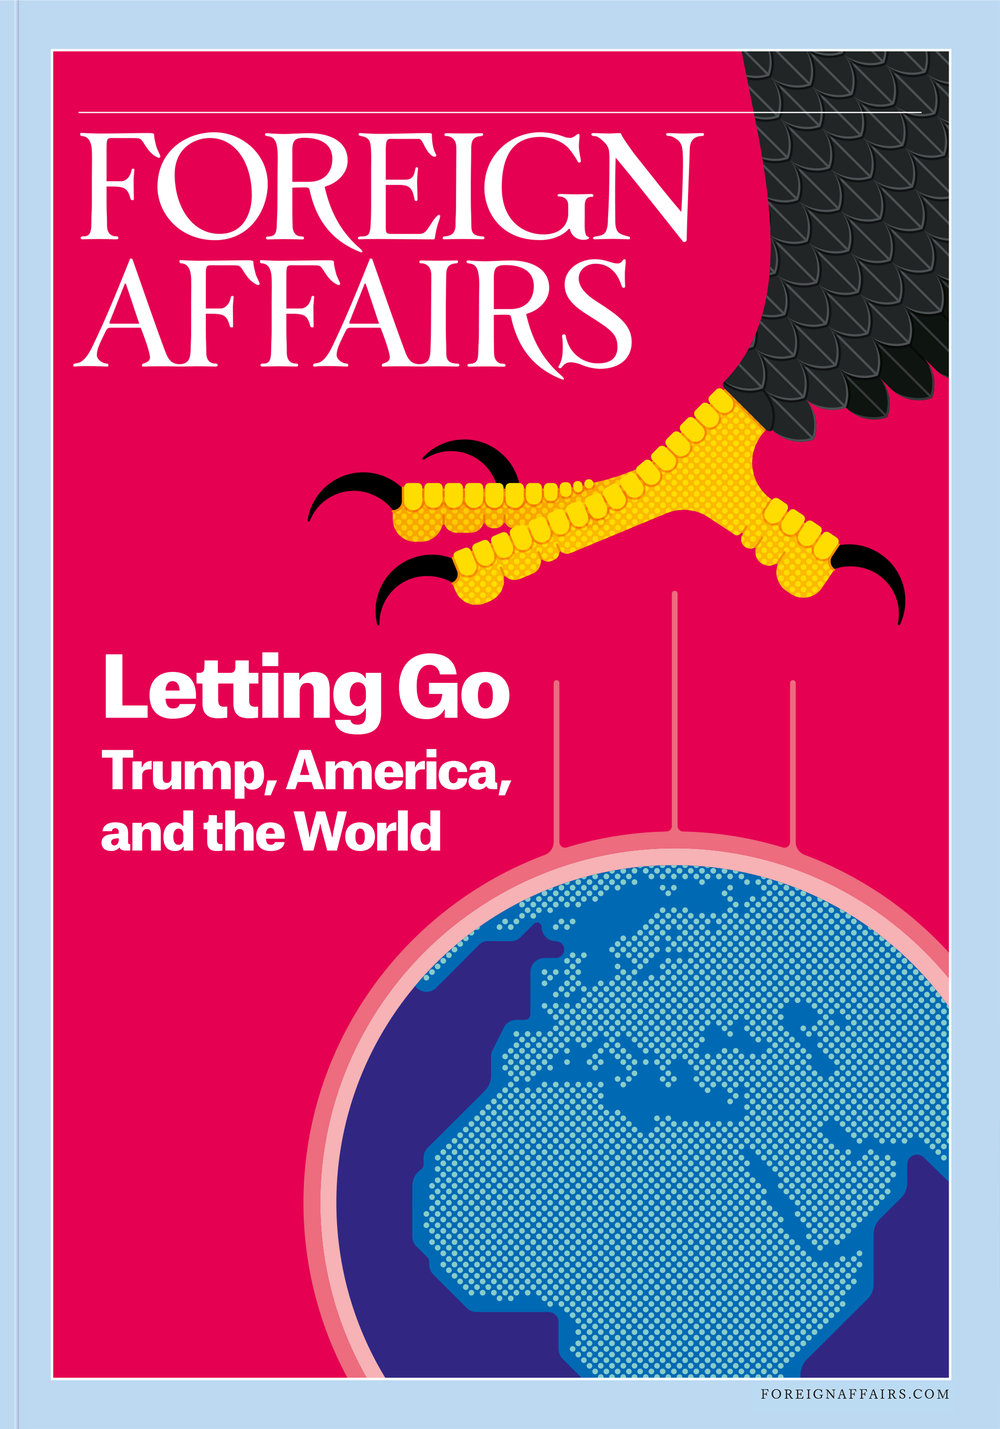 Pate_Foreign_Affairs_Cover_No_Background.jpg